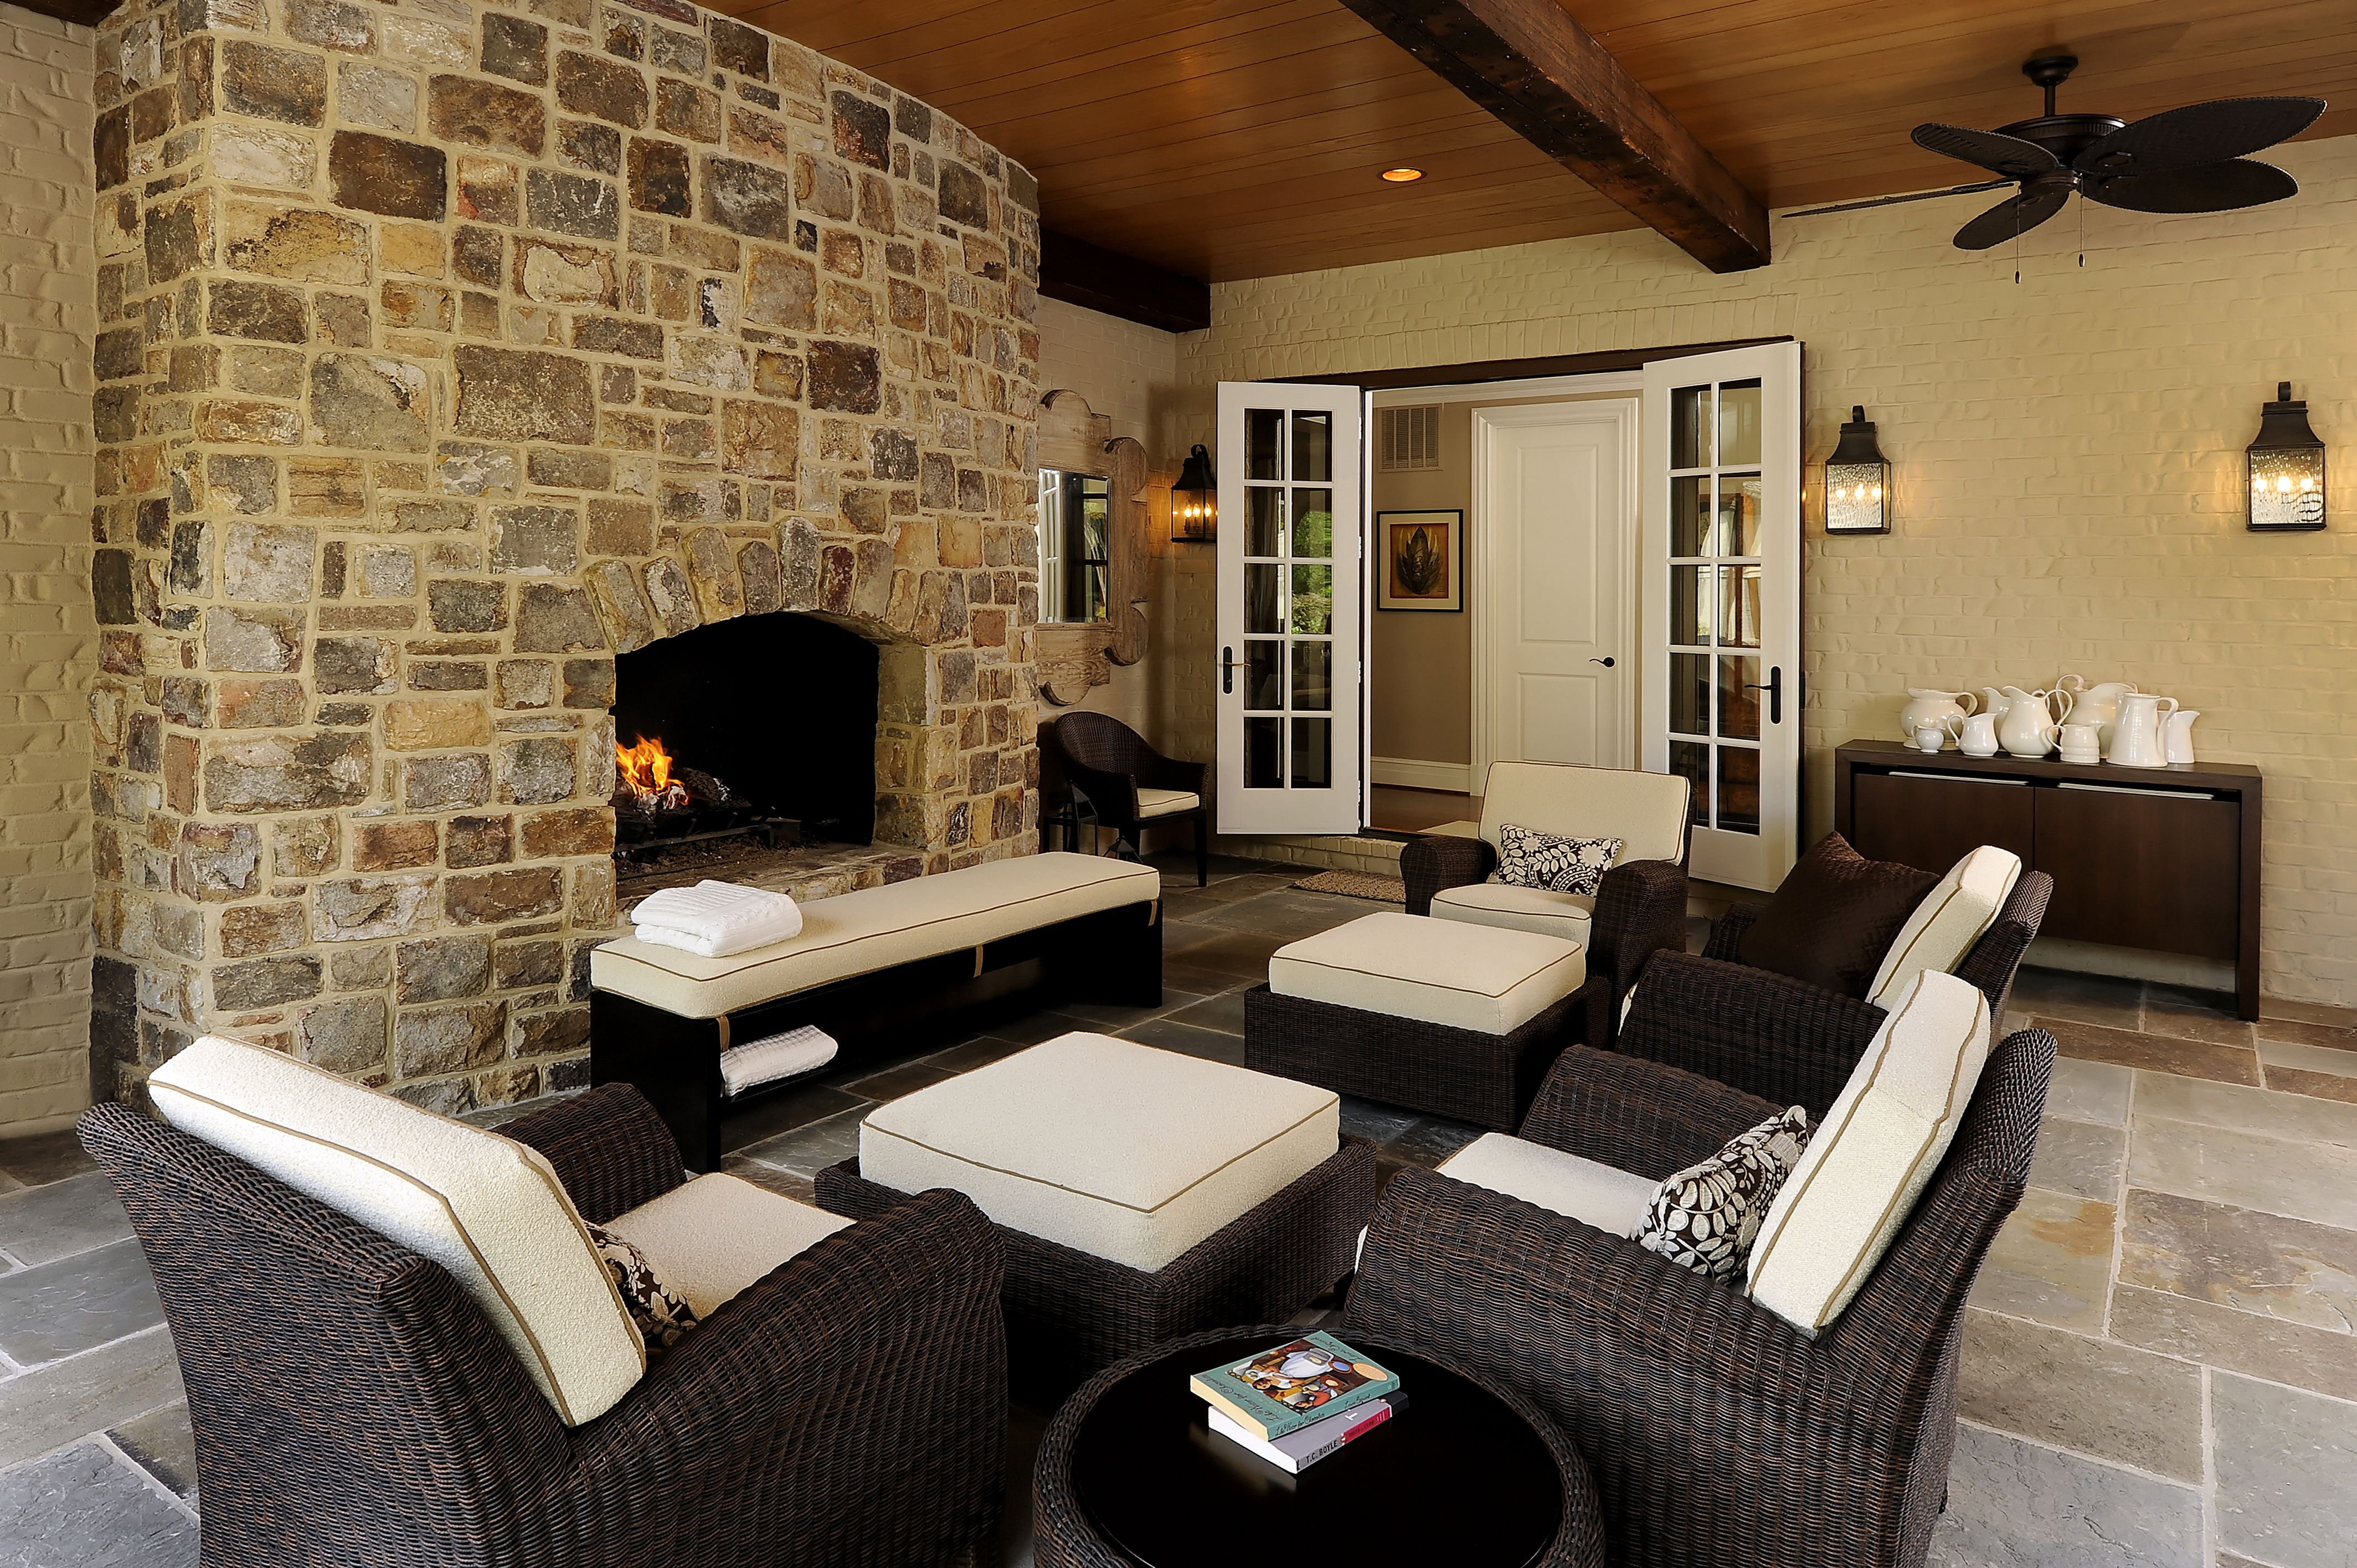 Snuggle up by the outside fireplace!